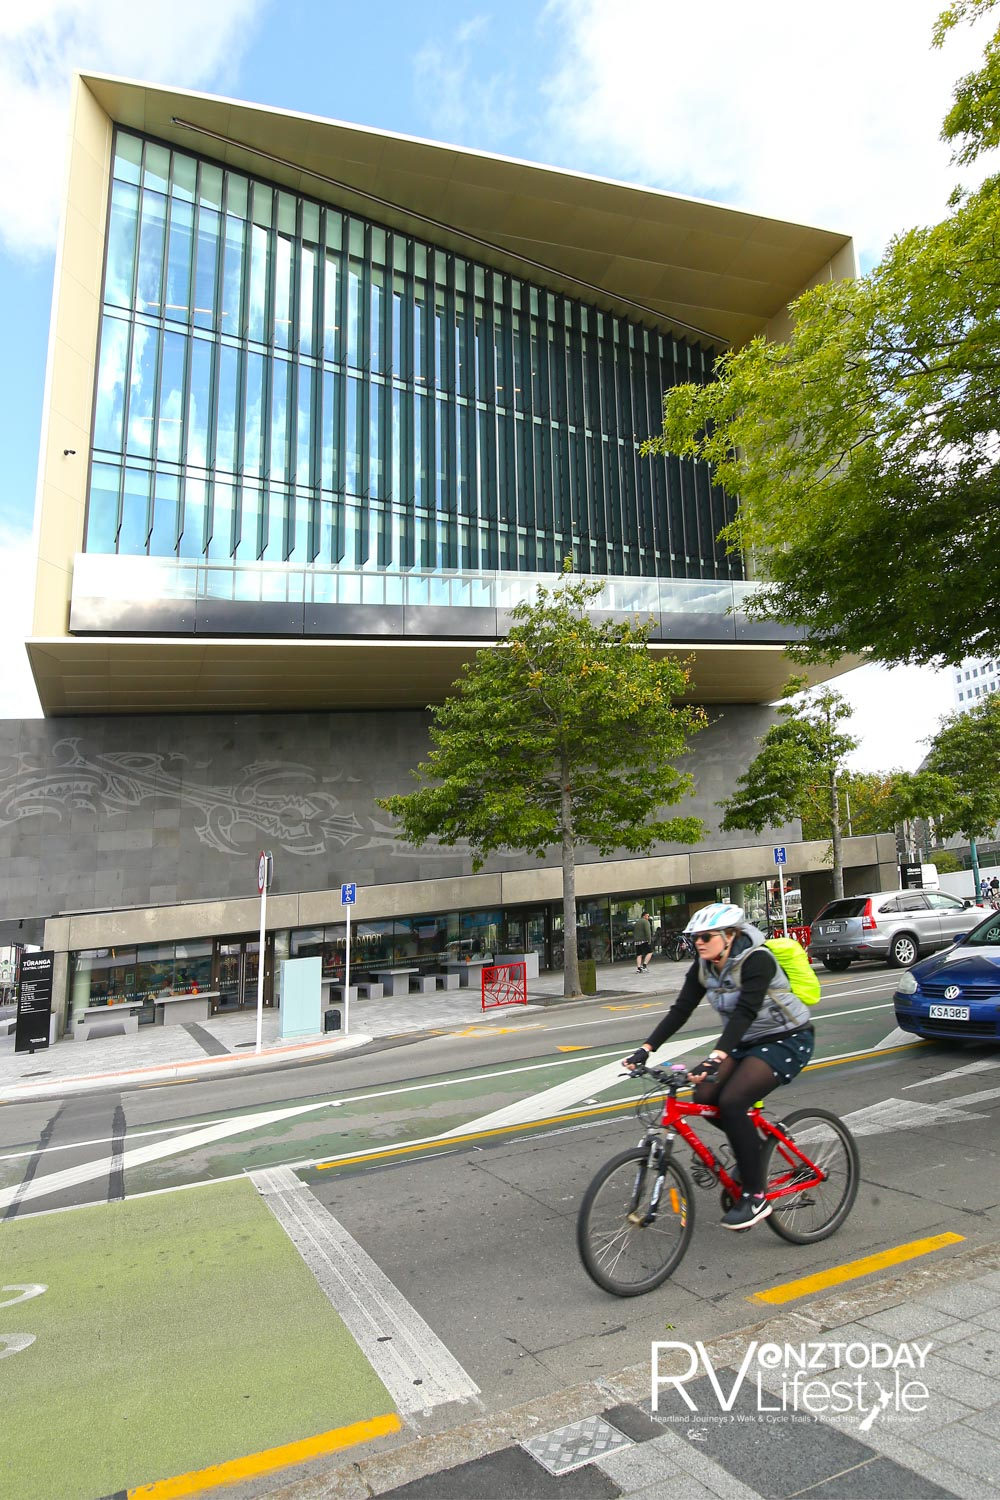 Tūranga public library provides an impressive central feature of the city